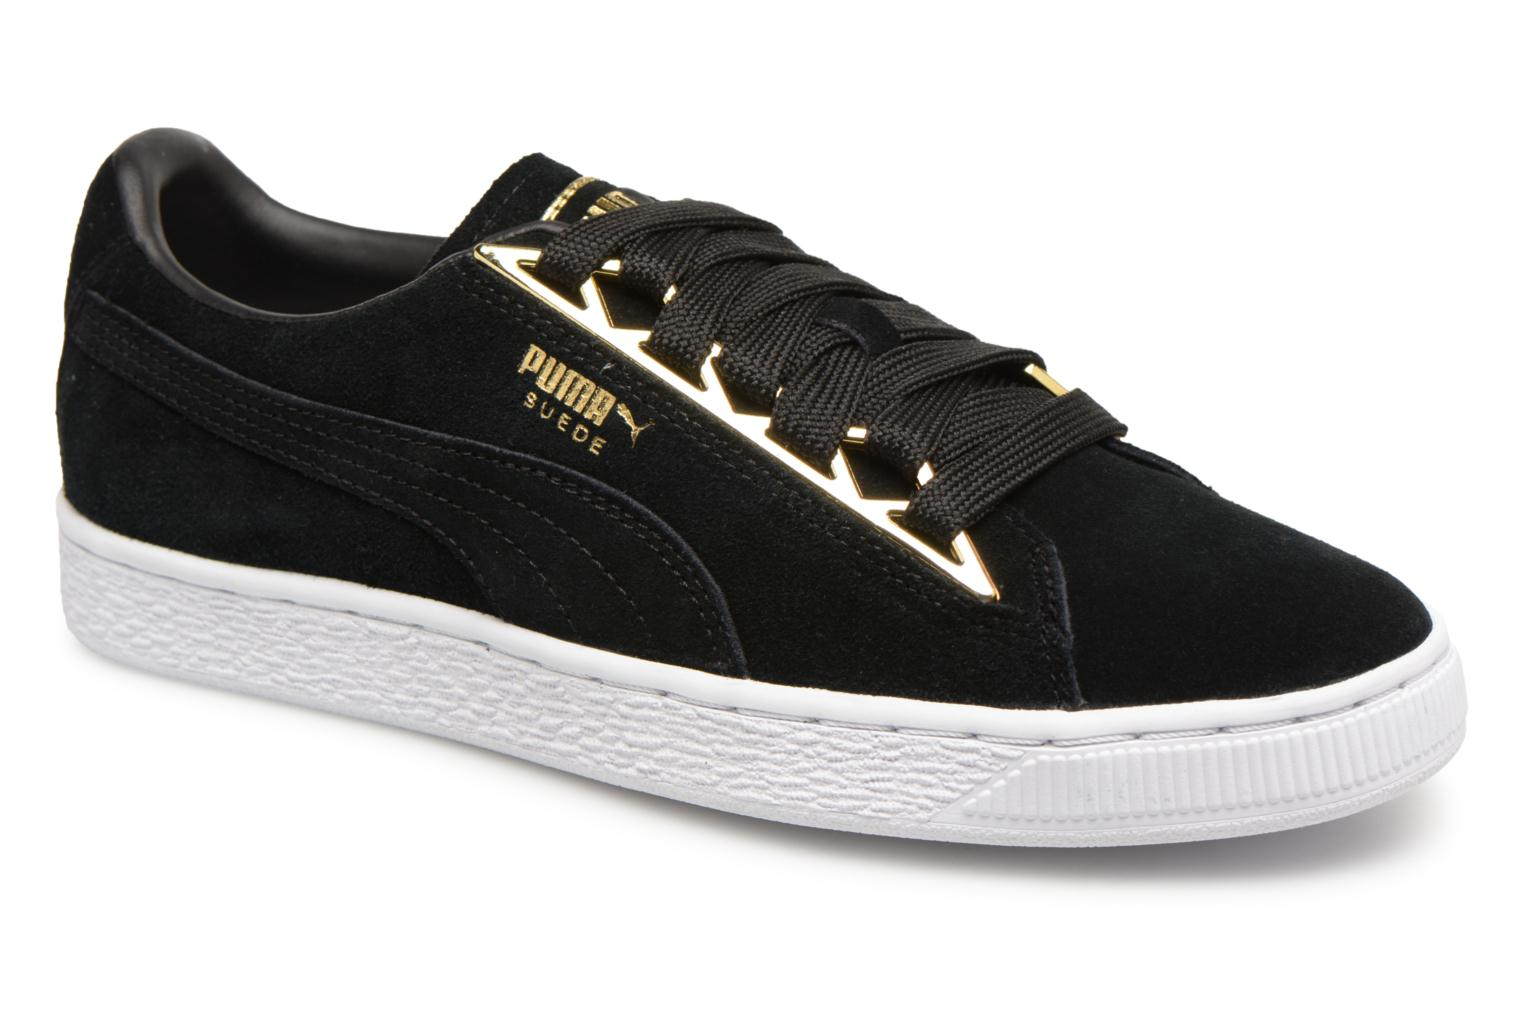 Metallic Jewel Suede Qo75wh Puma Black kZuOPiX